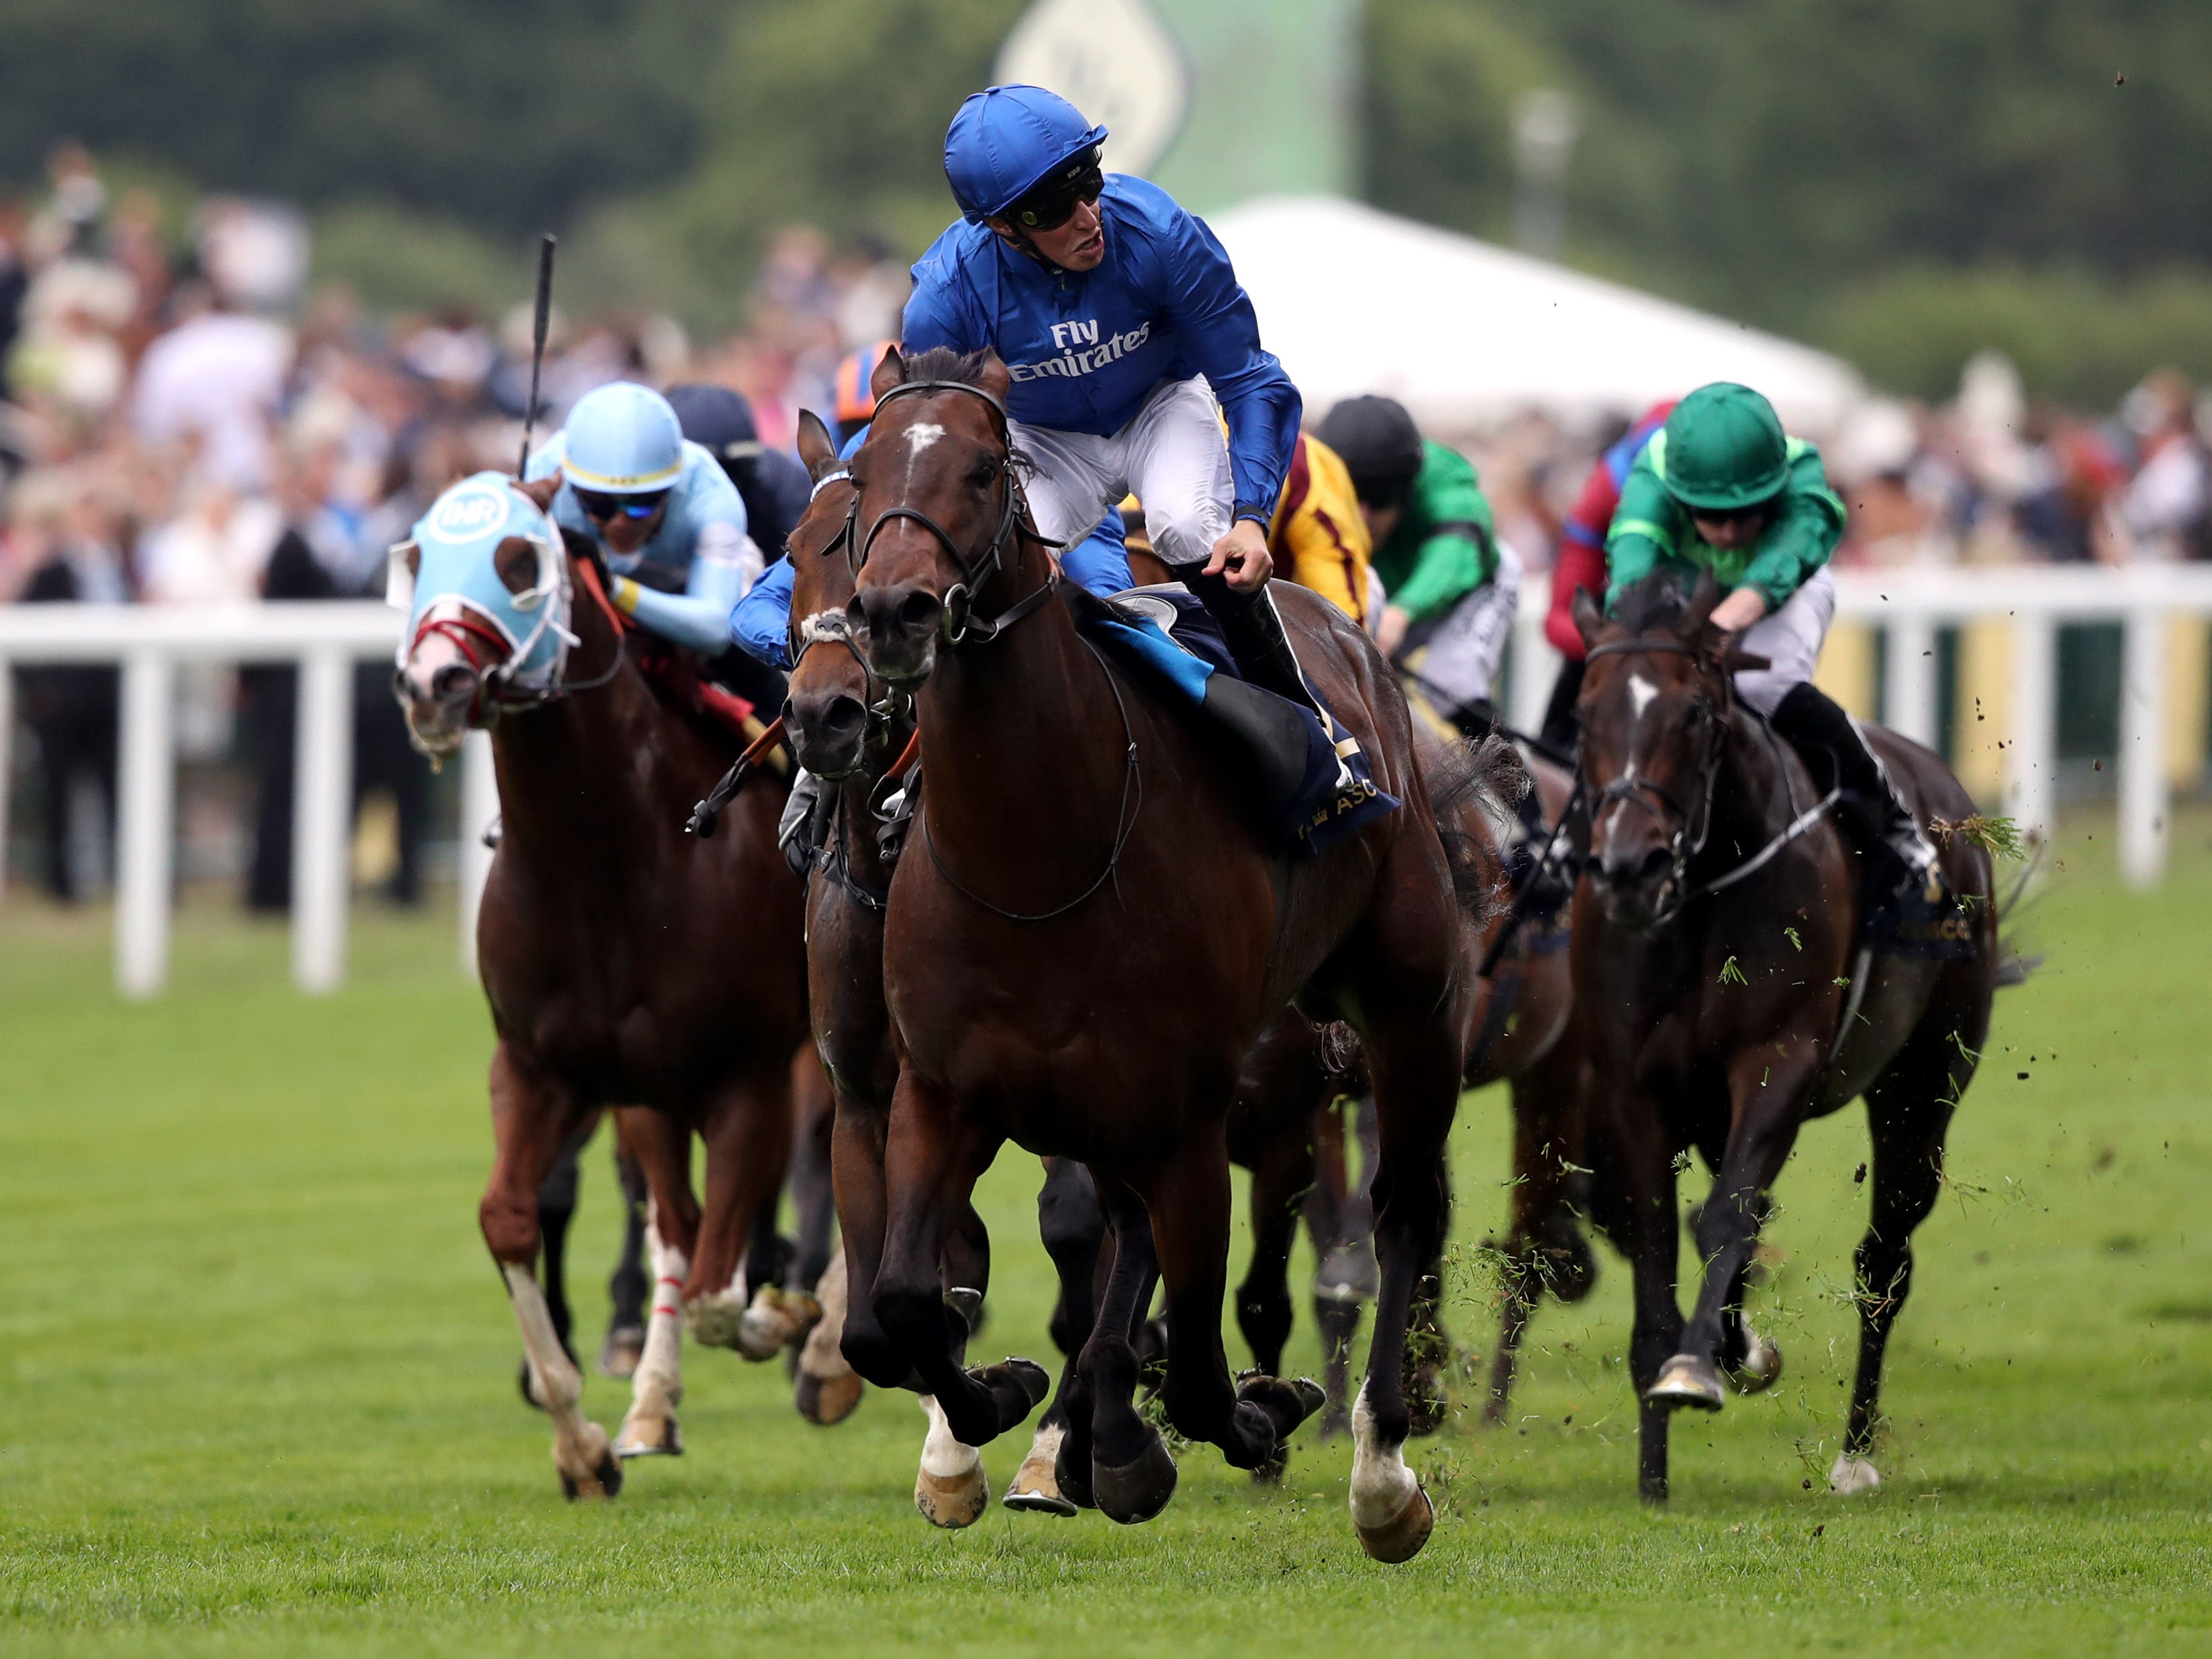 Blue Point comes home clear in last year's King's Stand (John Walton/PA)